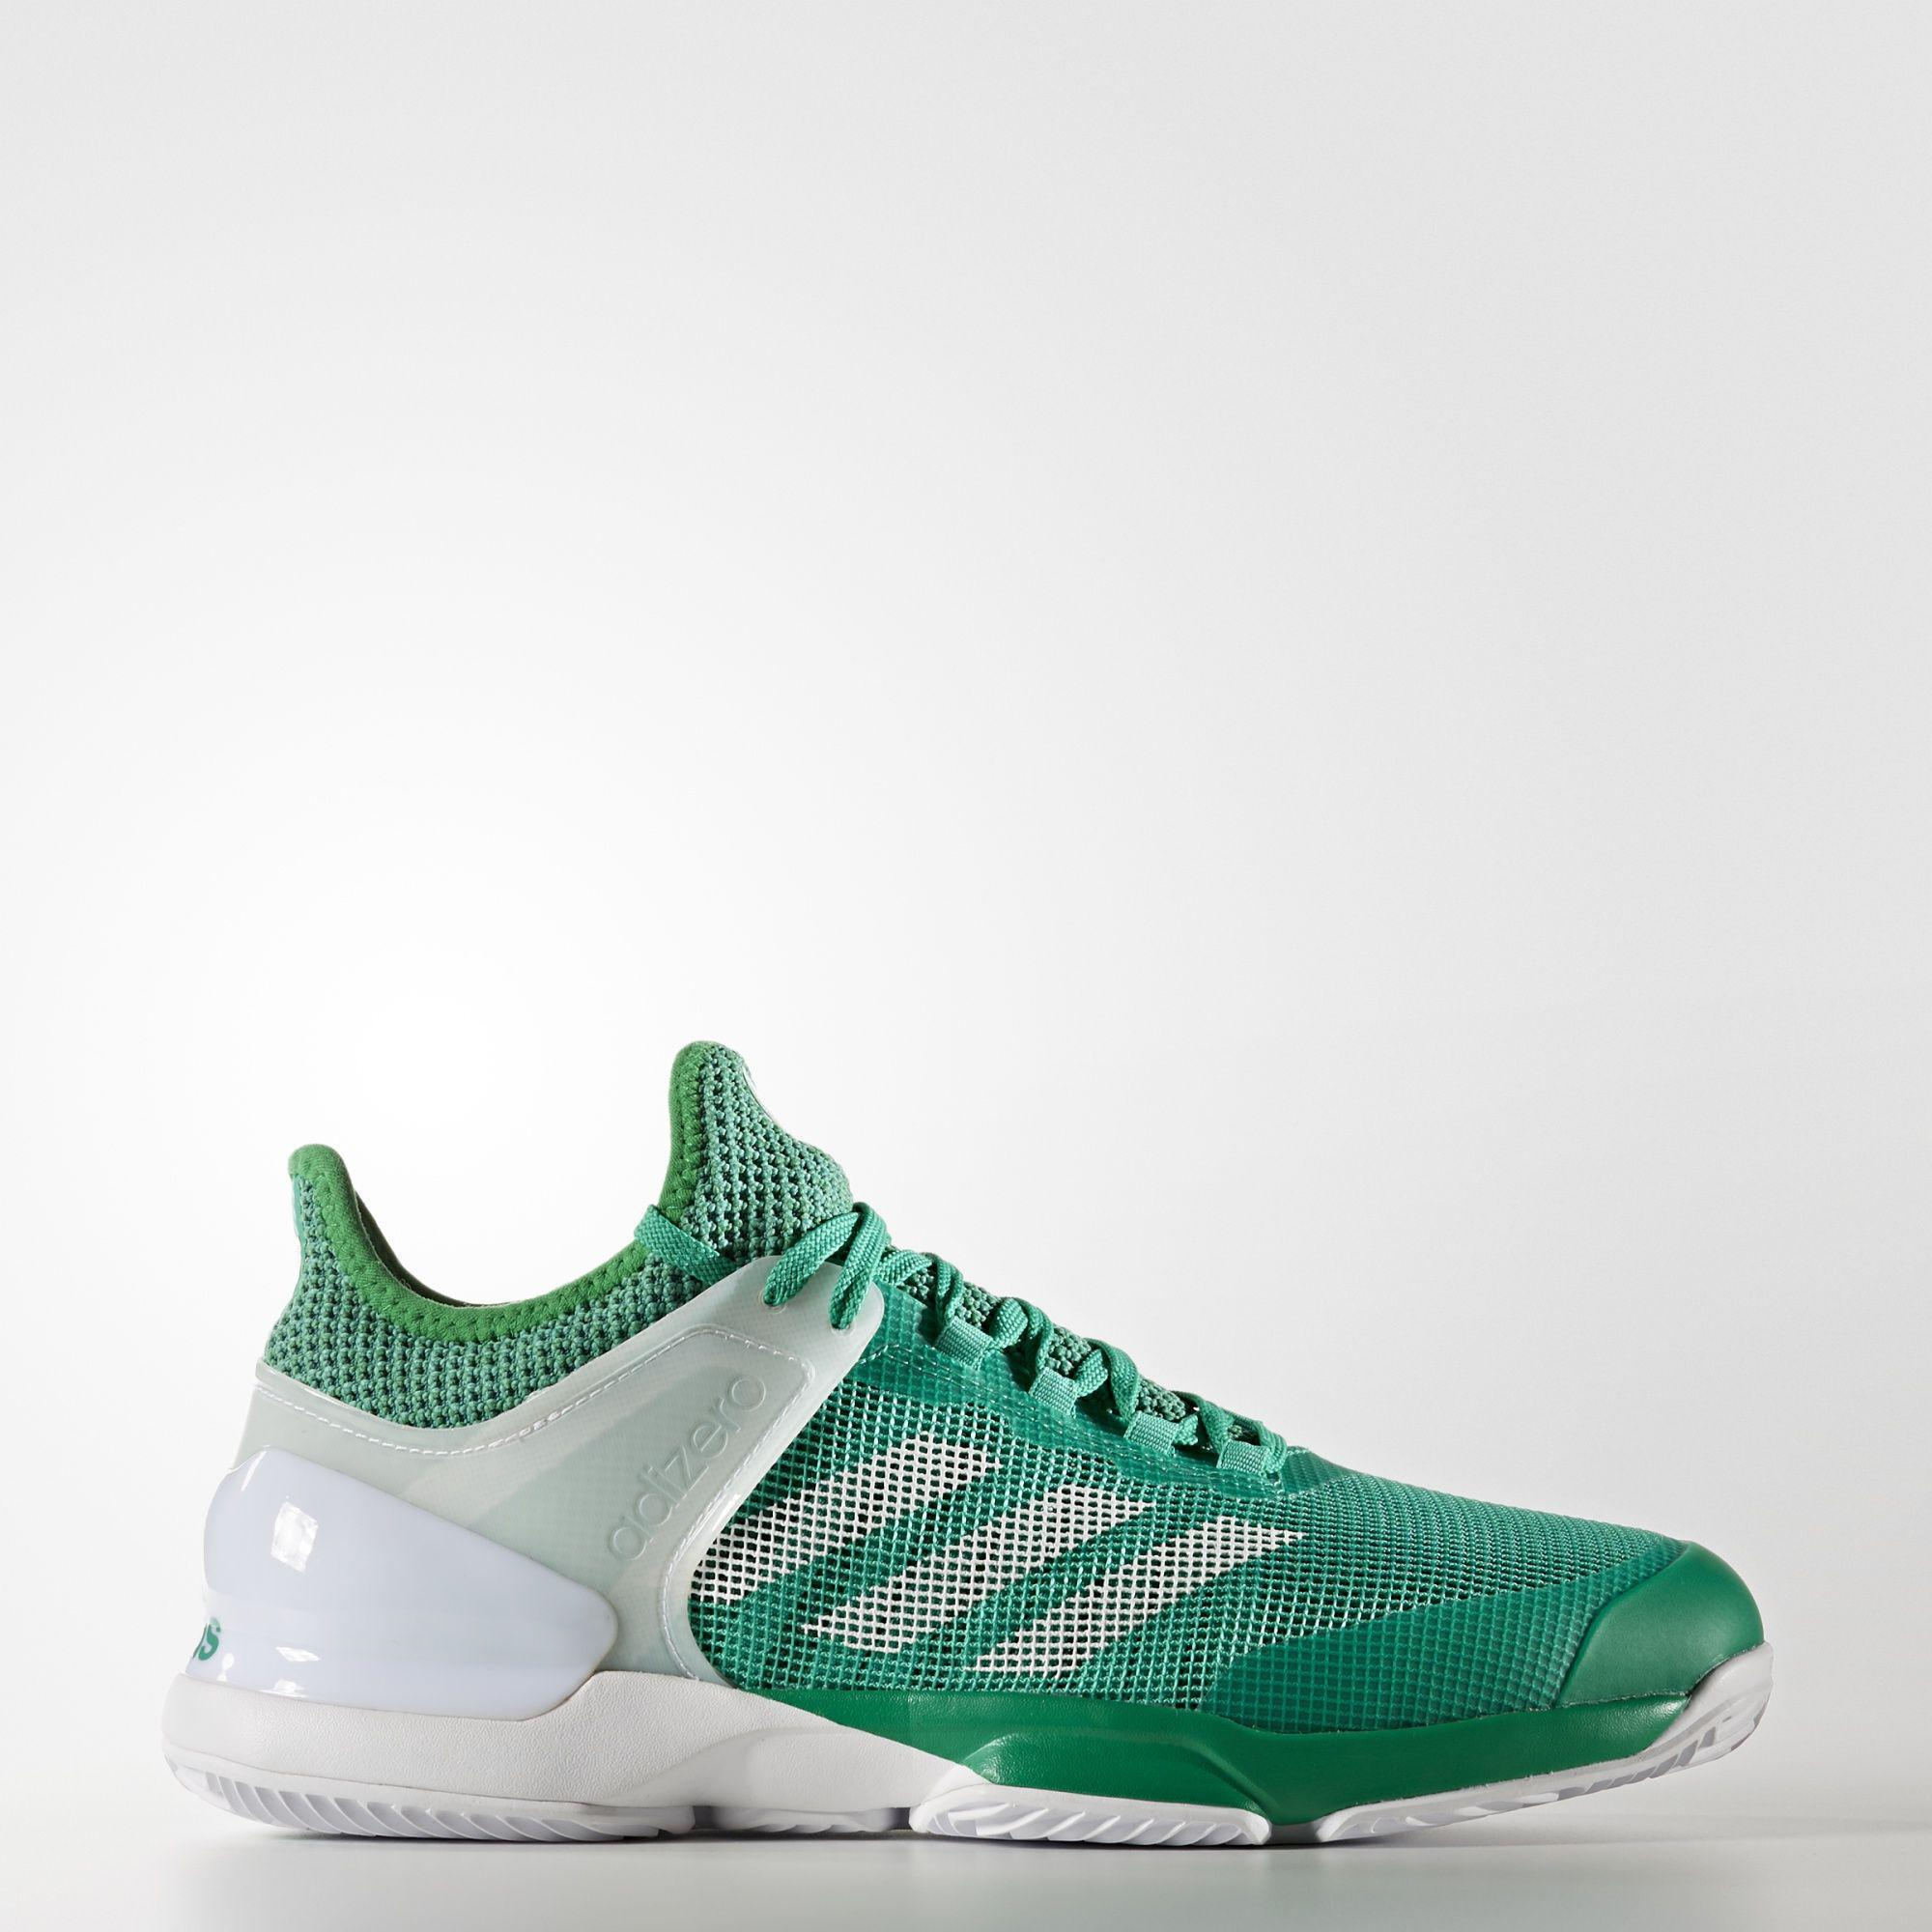 Adidas Mens Adizero Ubersonic 2 Clay Court Tennis Shoes - Green -  Tennisnuts.com aa549672c